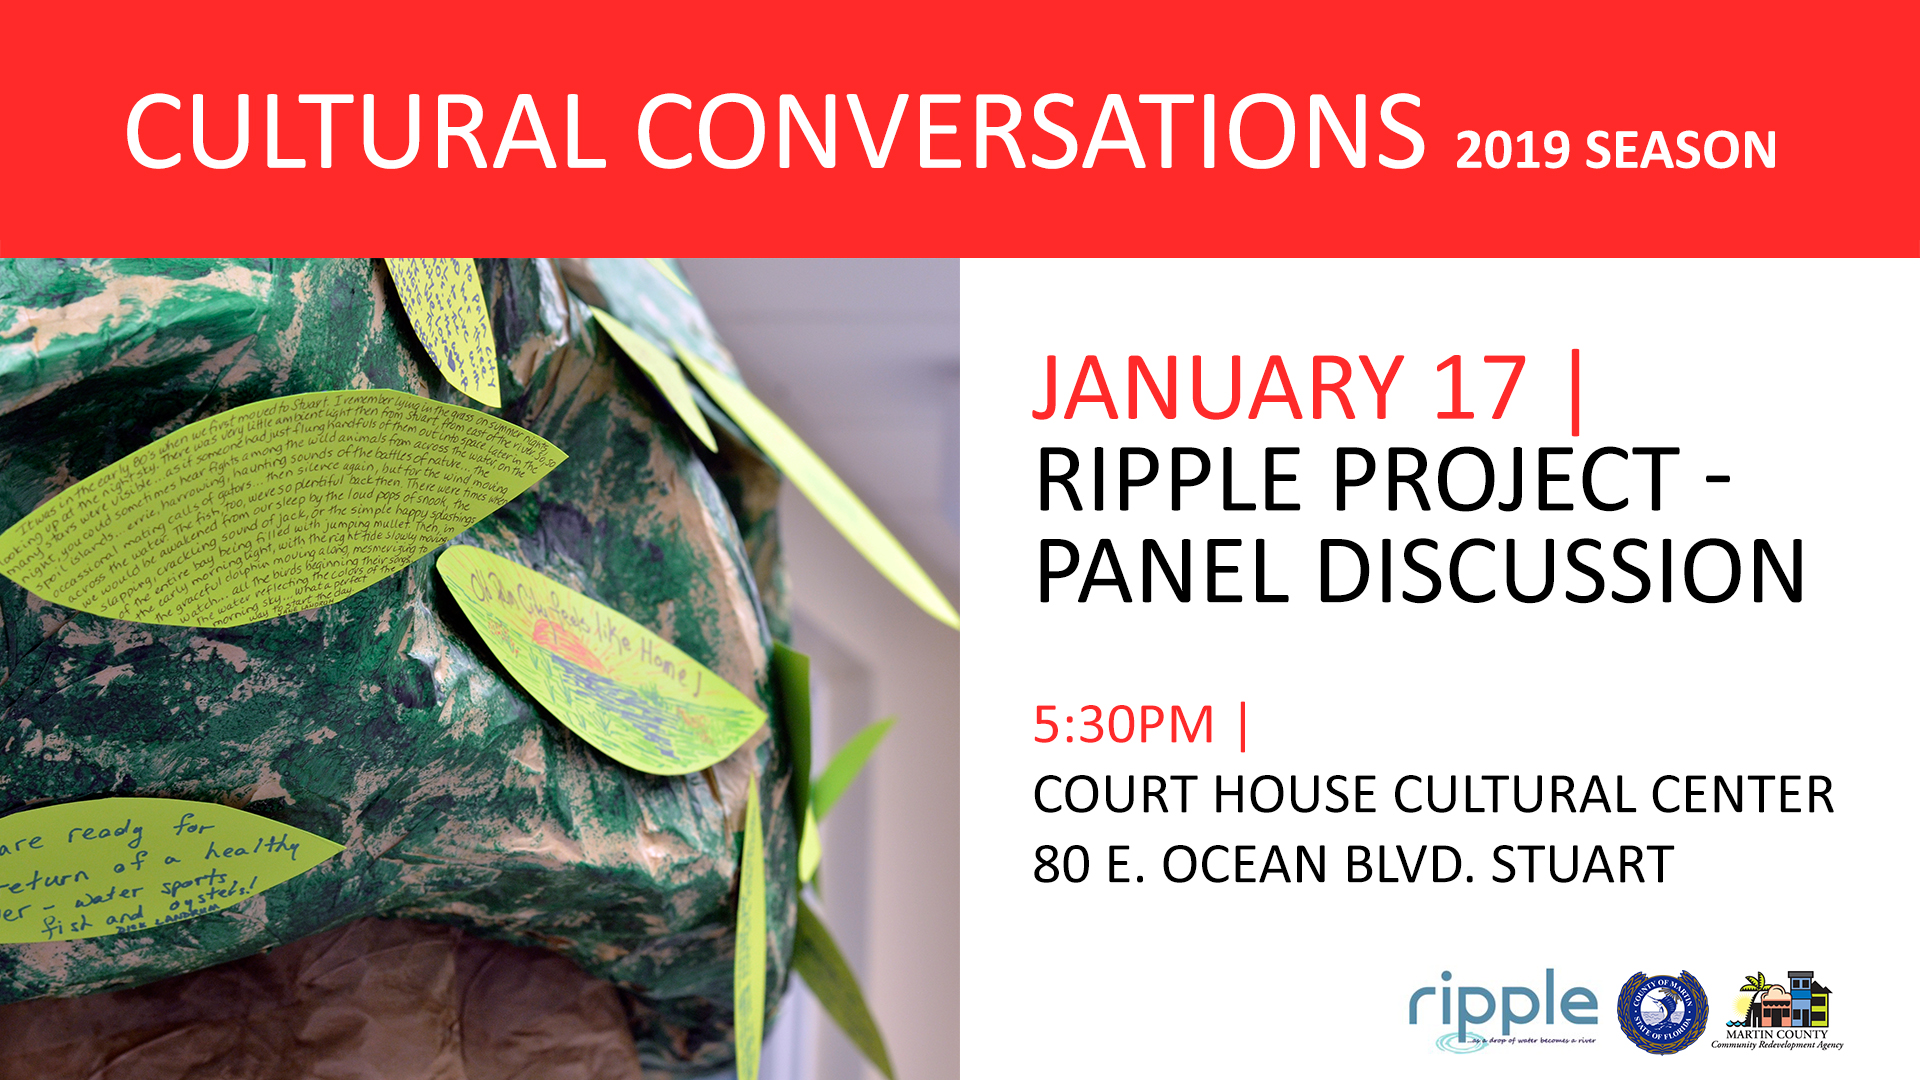 Cultural Conversations | Ripple Project Panel Discussion